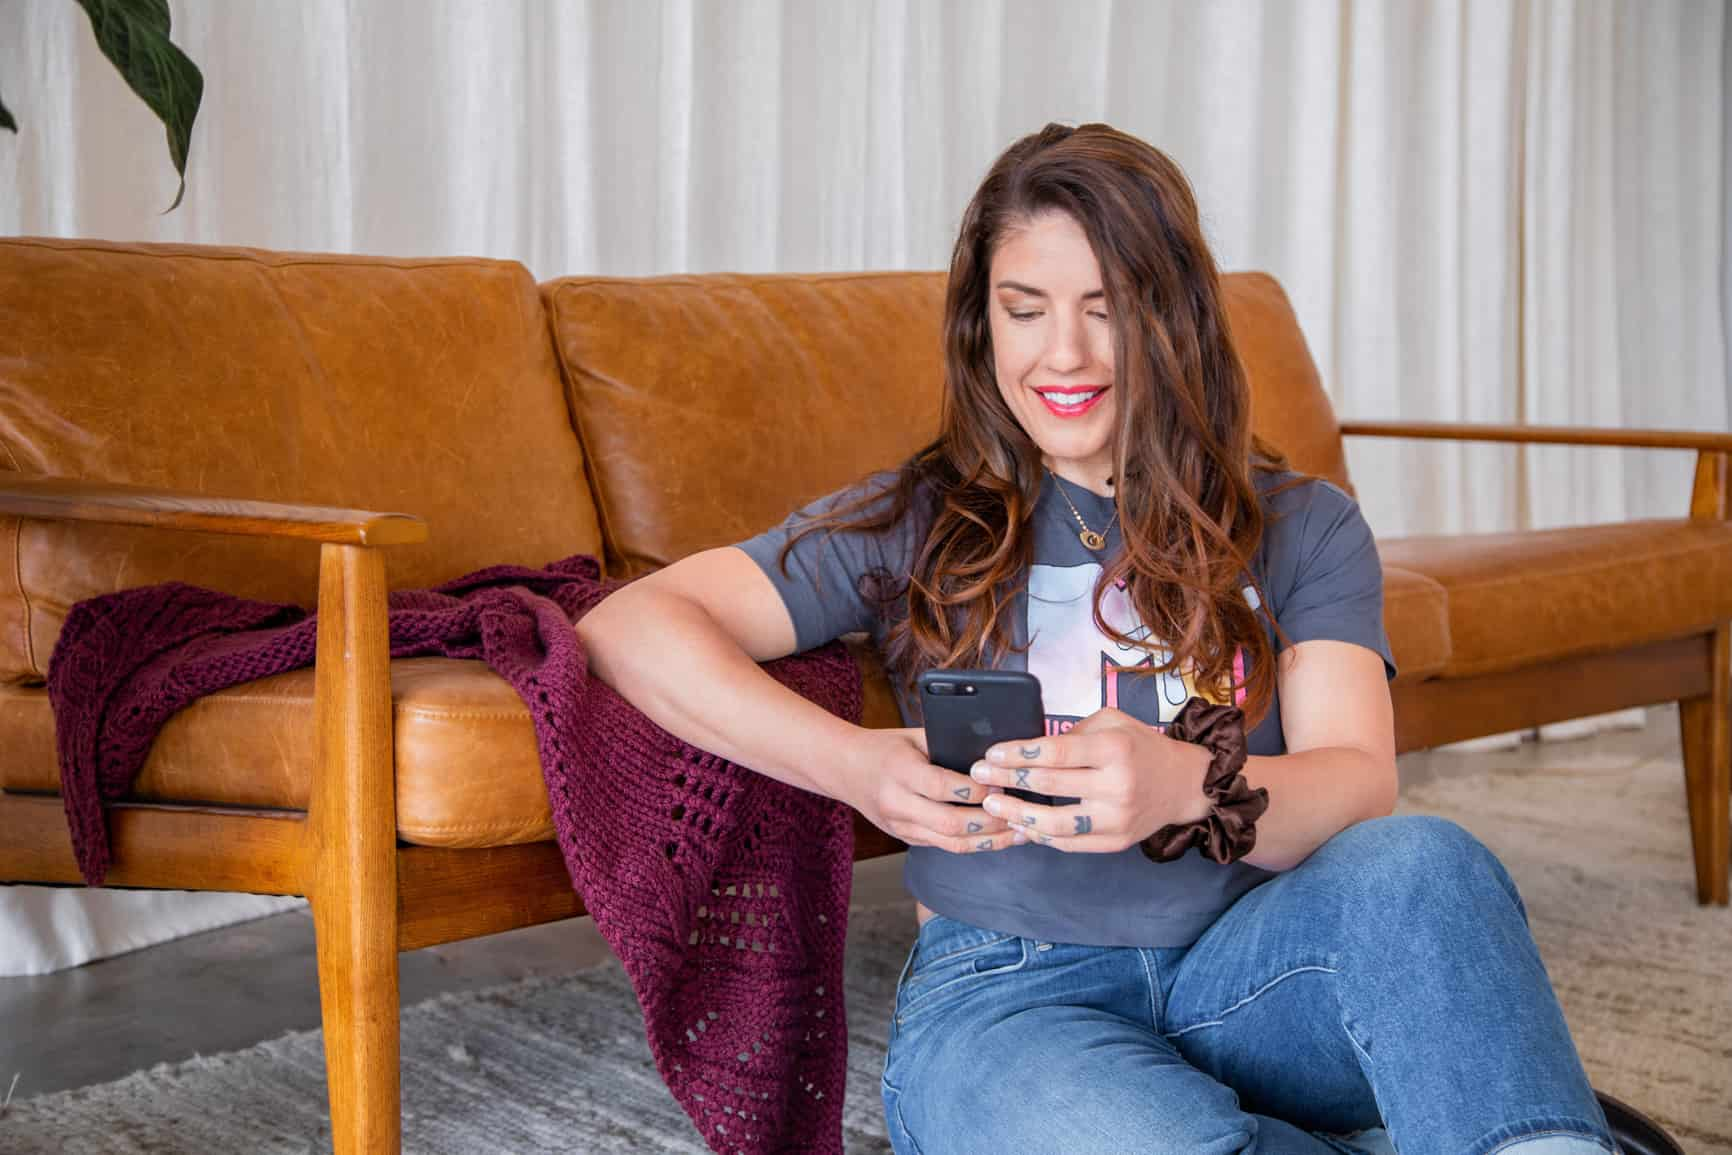 white woman with long brown wavy hair wearing a grey MTV t shirt and jeans sits in front of a leather couch holding a phone